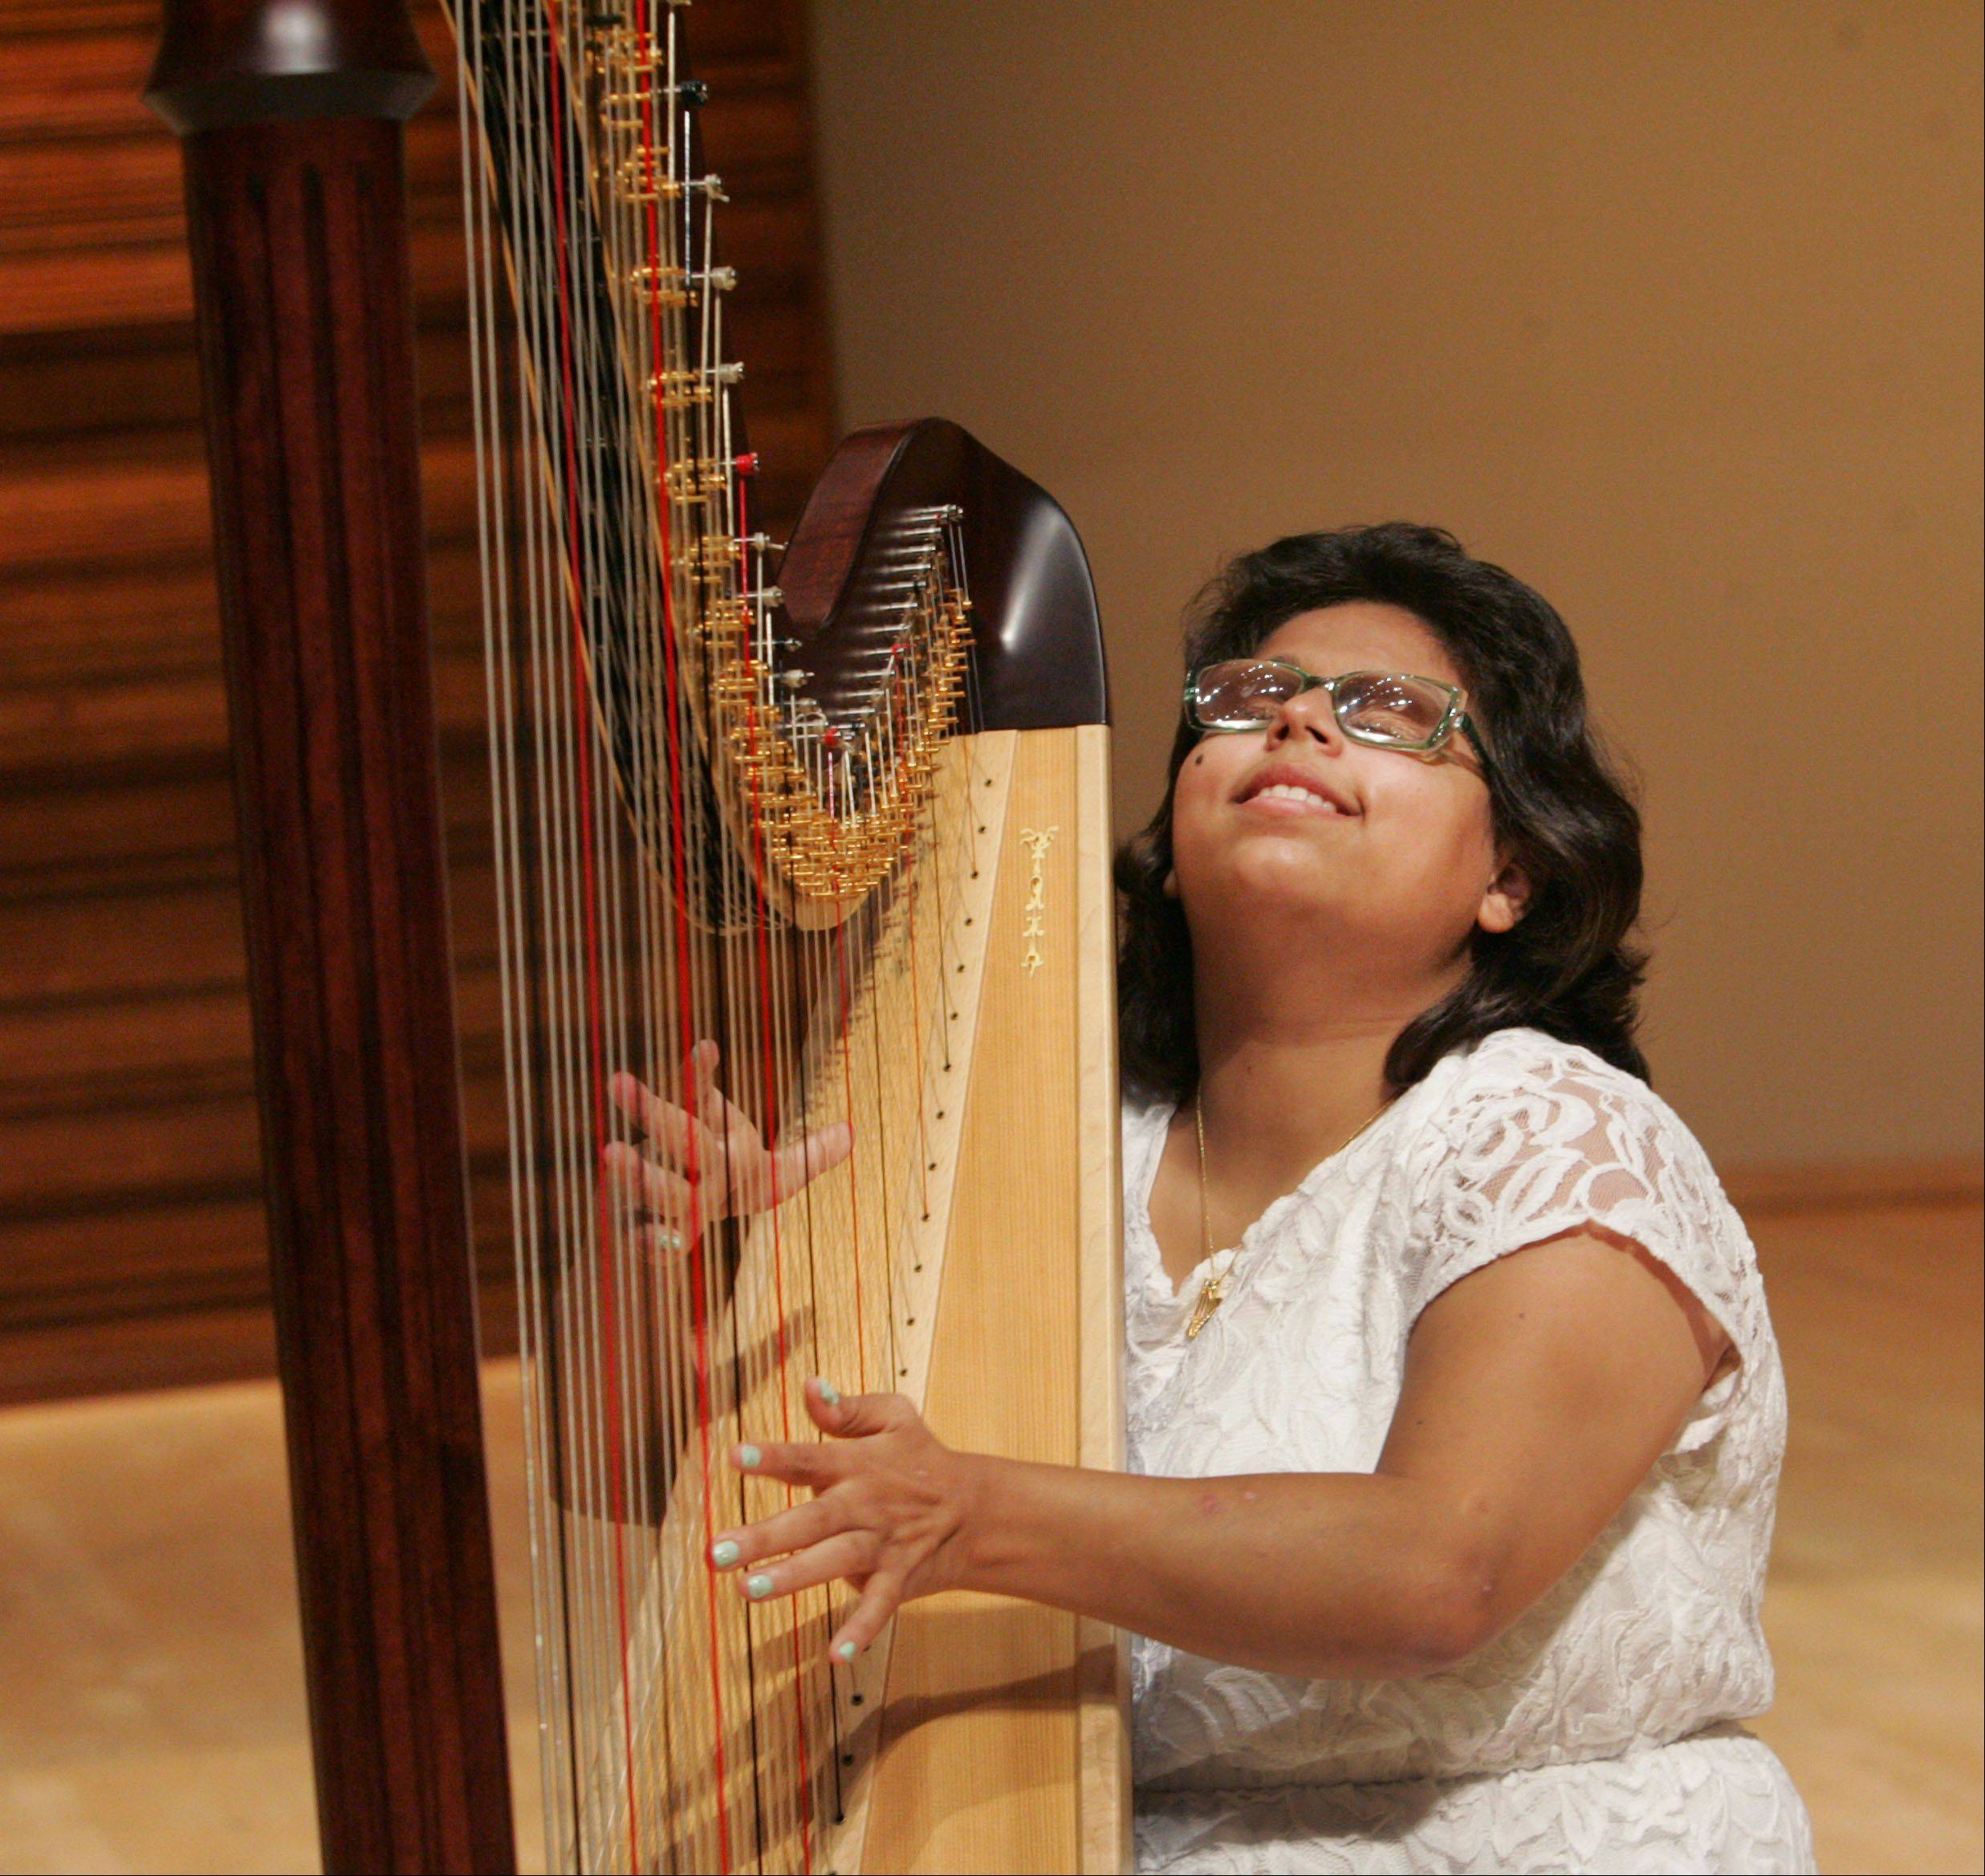 Special Talents America finalist Mia Strayer, 21, of Rockford, plays the harp in Wentz Concert Hall at North Central College in Naperville on Friday. Mia, who is blind and has cerebral palsy, will perform at Wentz Hall with 13 other contestants in the talent competition on November 5.